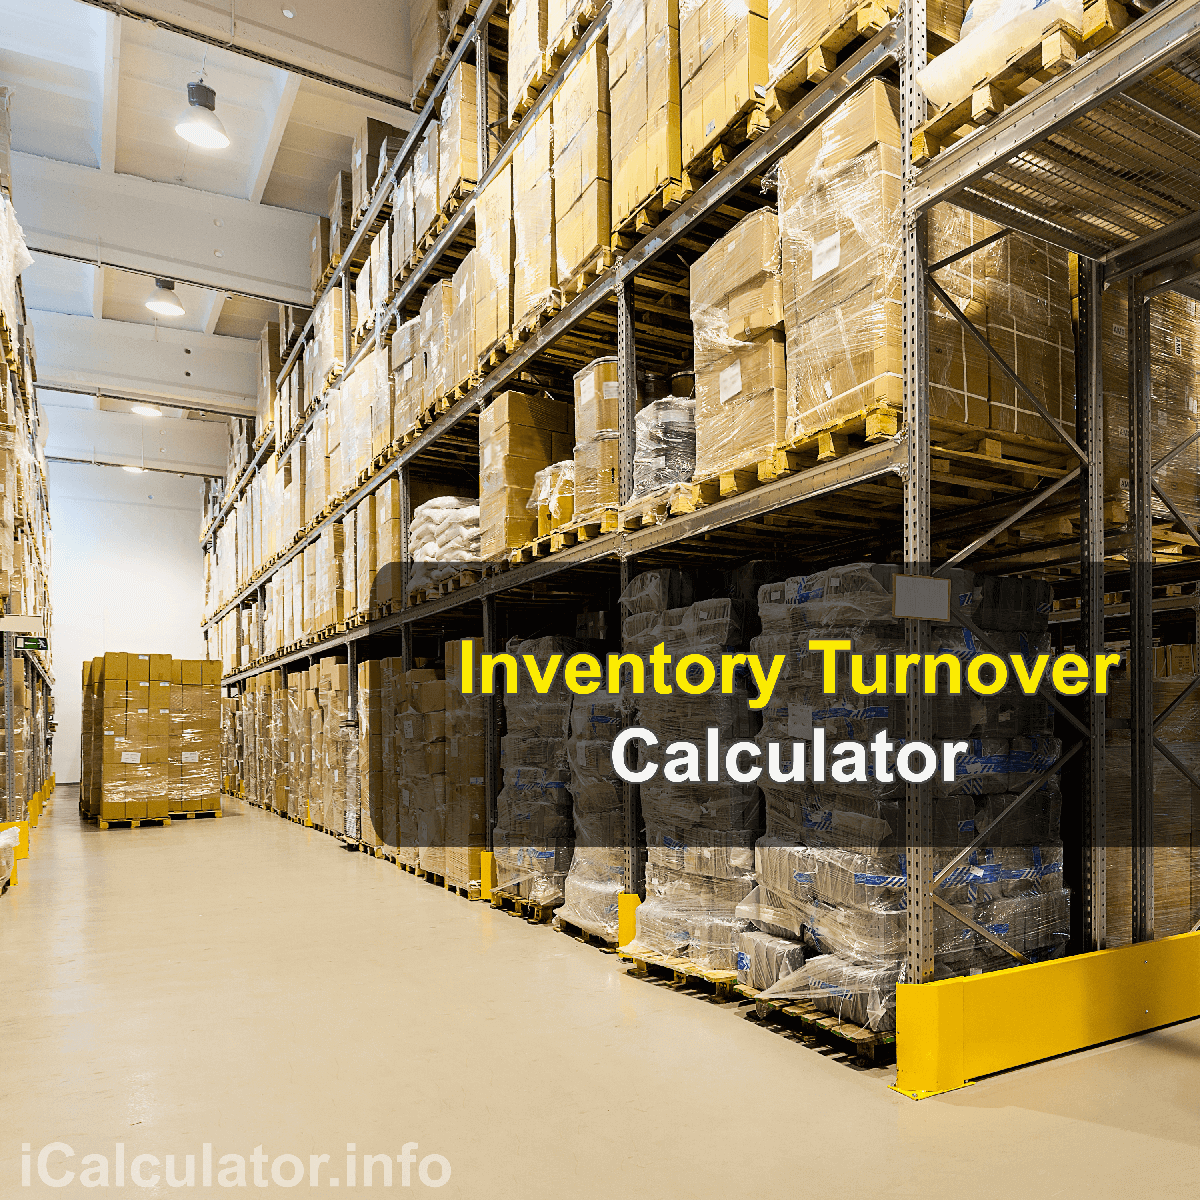 Inventory Turnover Calculator. This image provides details of how to calculate inventory turnover product using a good calculator and notepad. By using the either of the inventory turnover and inventory management formulas, the Inventory Turnover Calculator provides a true calculation of how many times you have sold your inventory in a defined period.